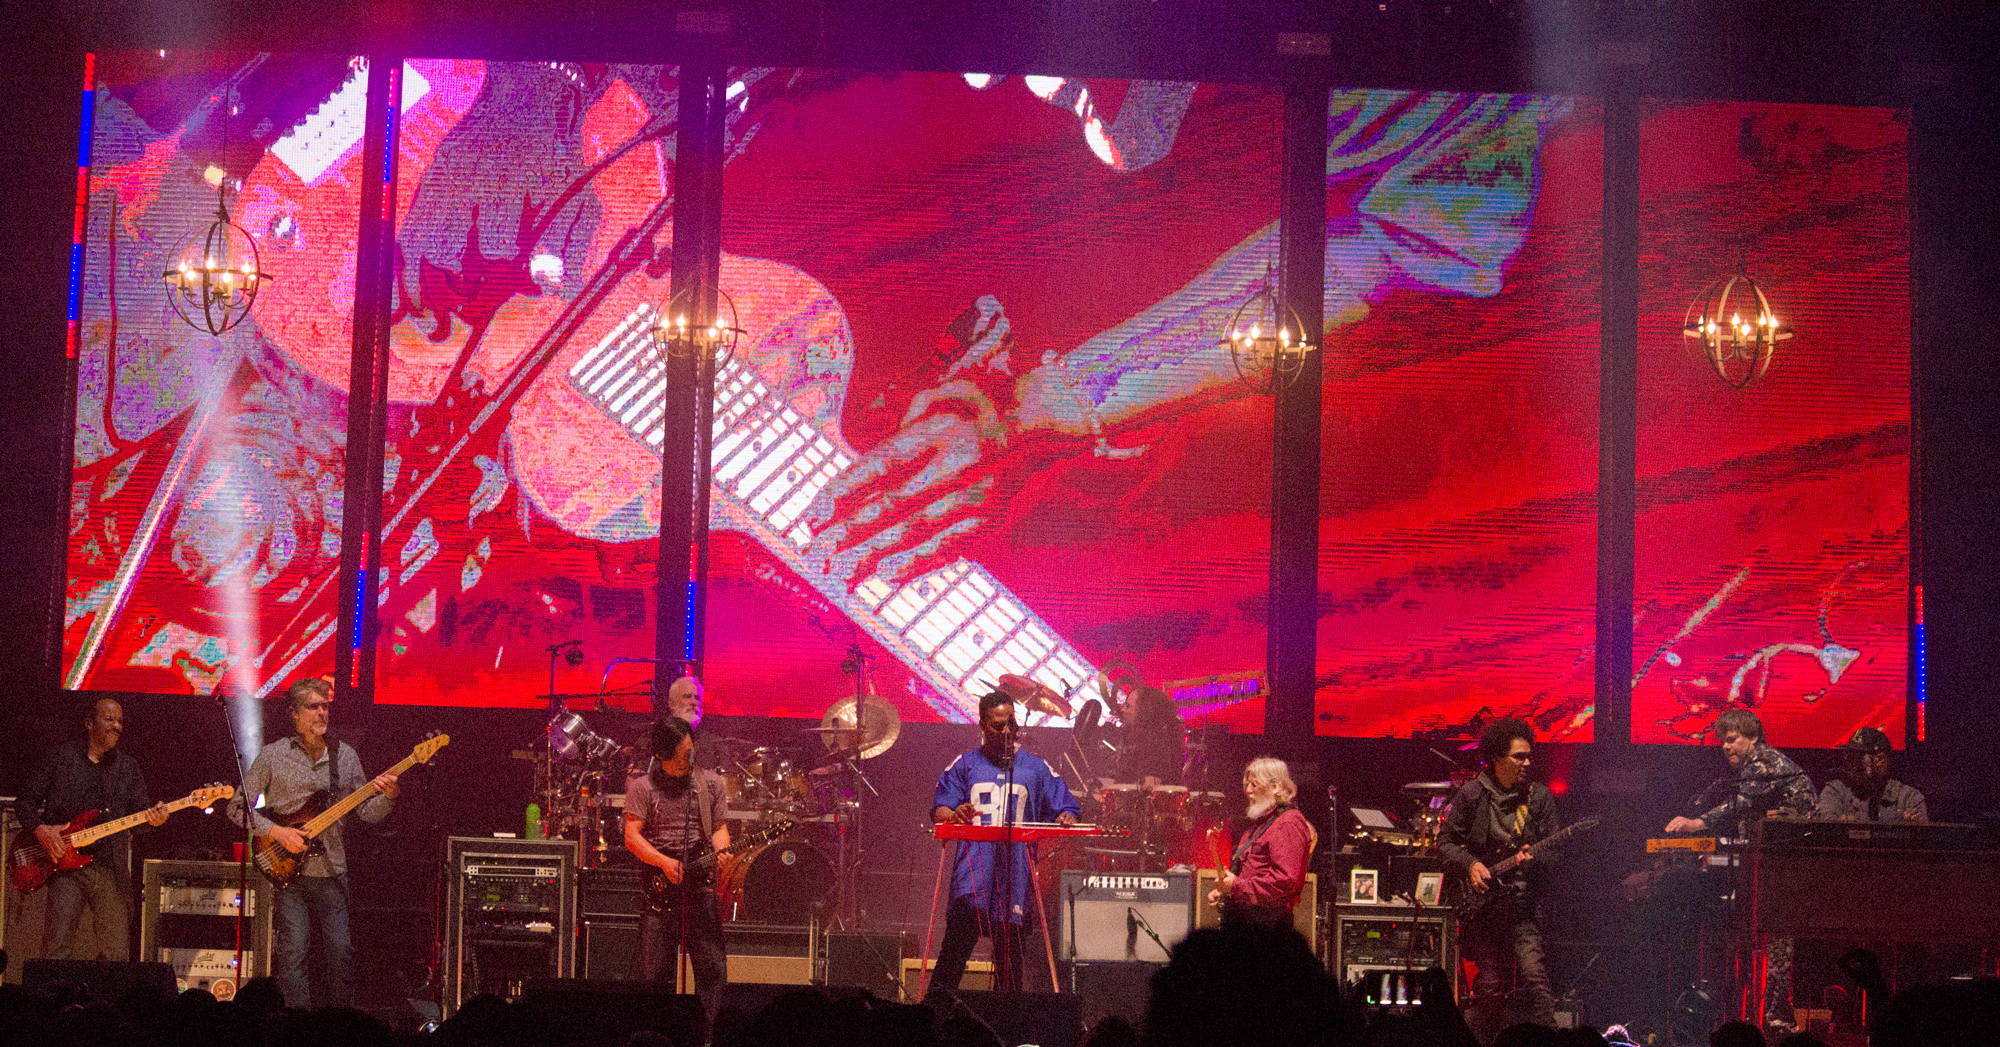 The String Cheese Incident Hosted a New Orleans Themed Jam Session on Saturday at the 1st Bank Center